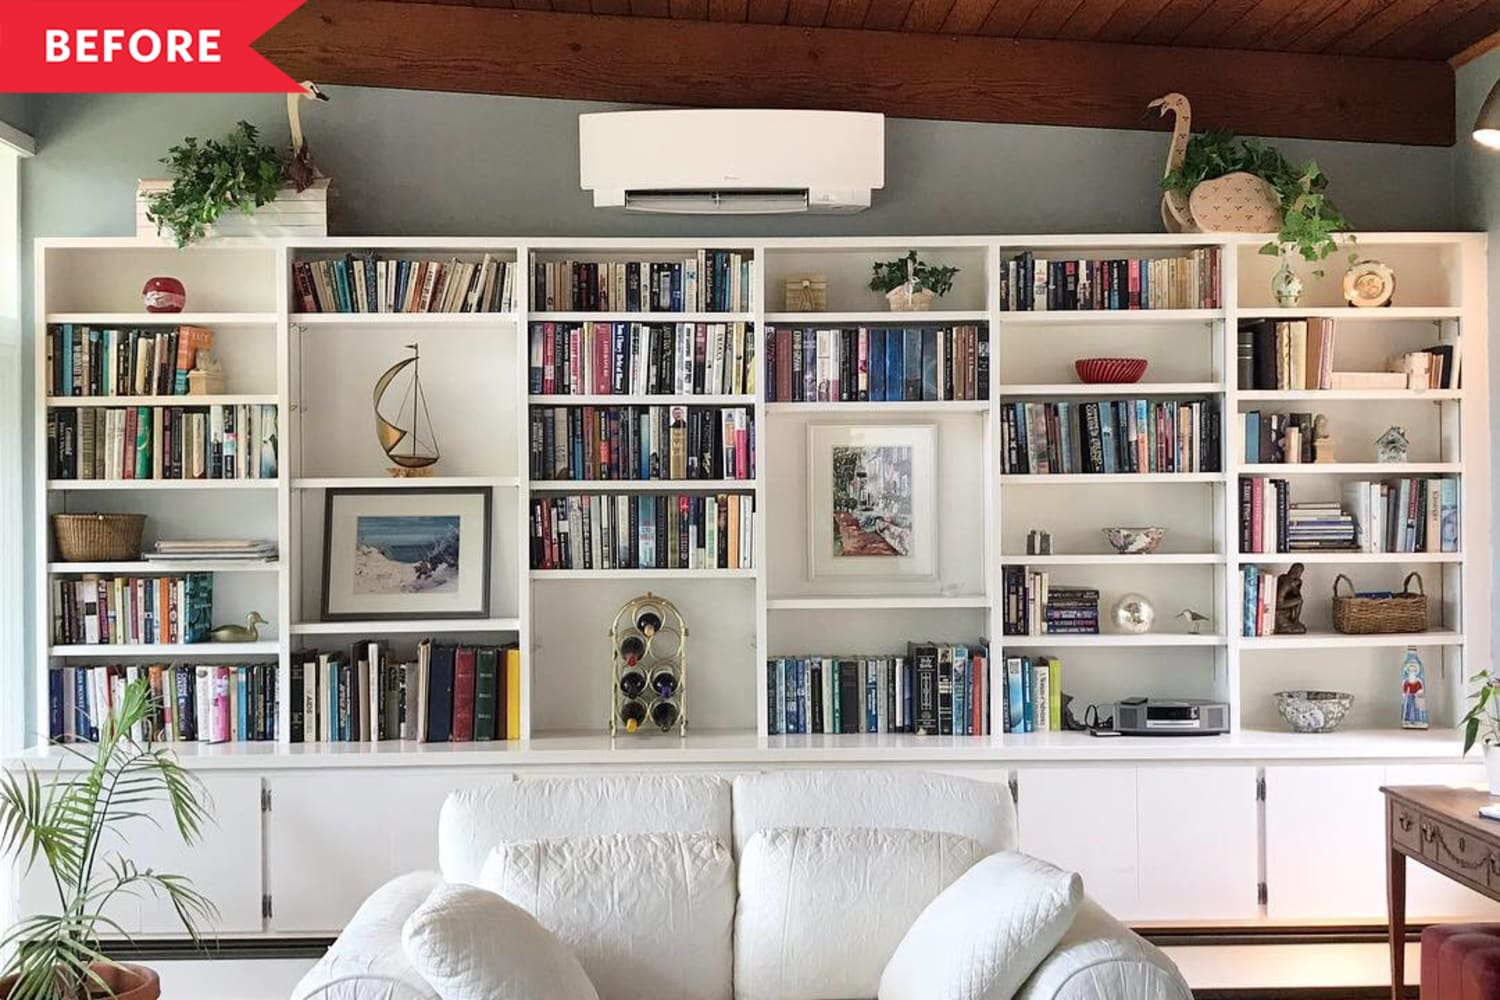 Before and After: A Bold Living Room Bookshelf Transformation for Less than $100